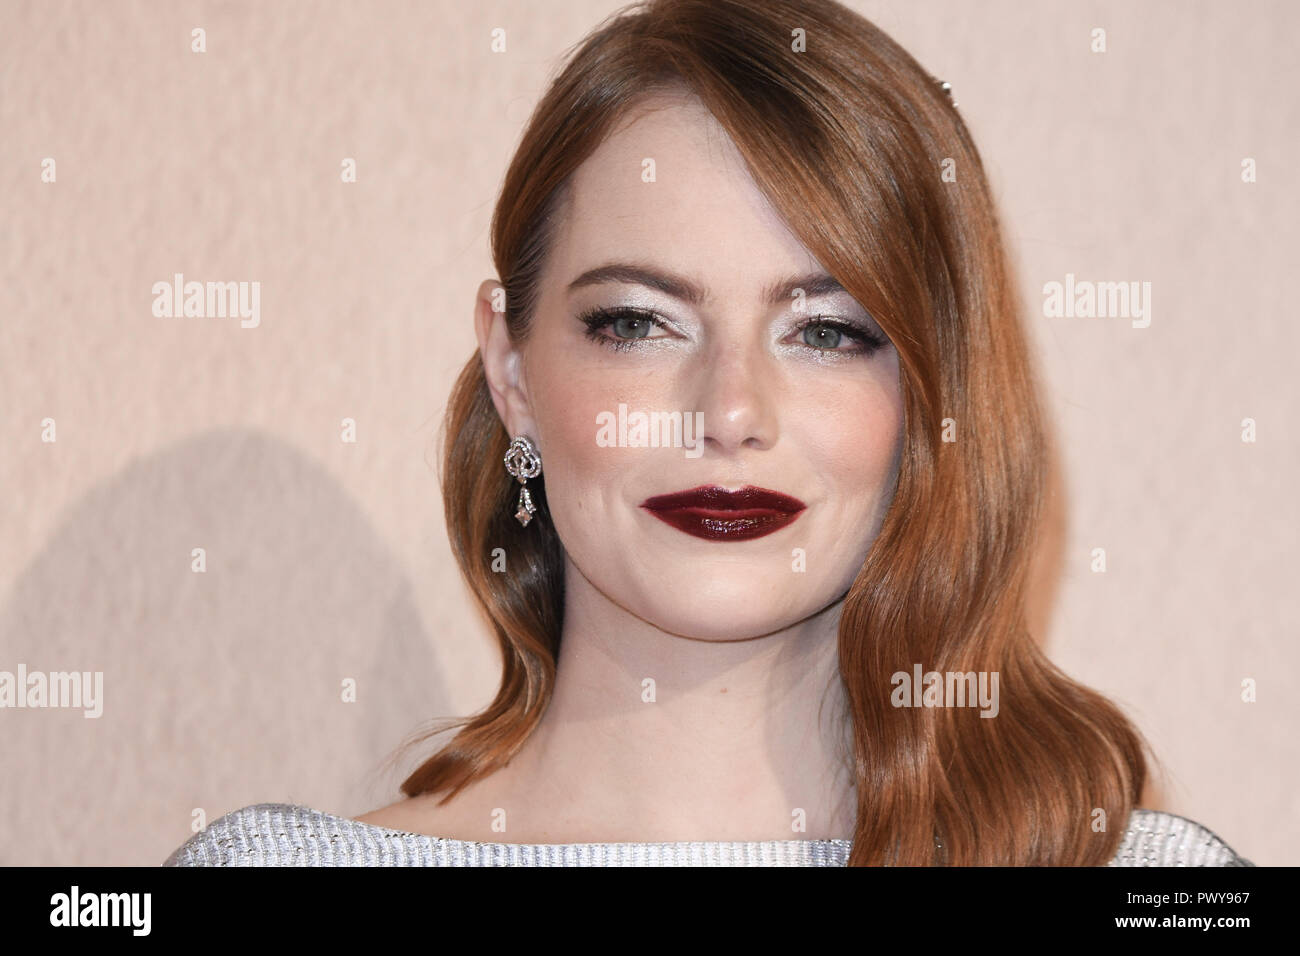 LONDON, UK. October 18, 2018: Emma Stone at the London Film Festival screening of 'The Favourite' at the BFI South Bank, London. Picture: Steve Vas/Featureflash Credit: Paul Smith/Alamy Live News - Stock Image